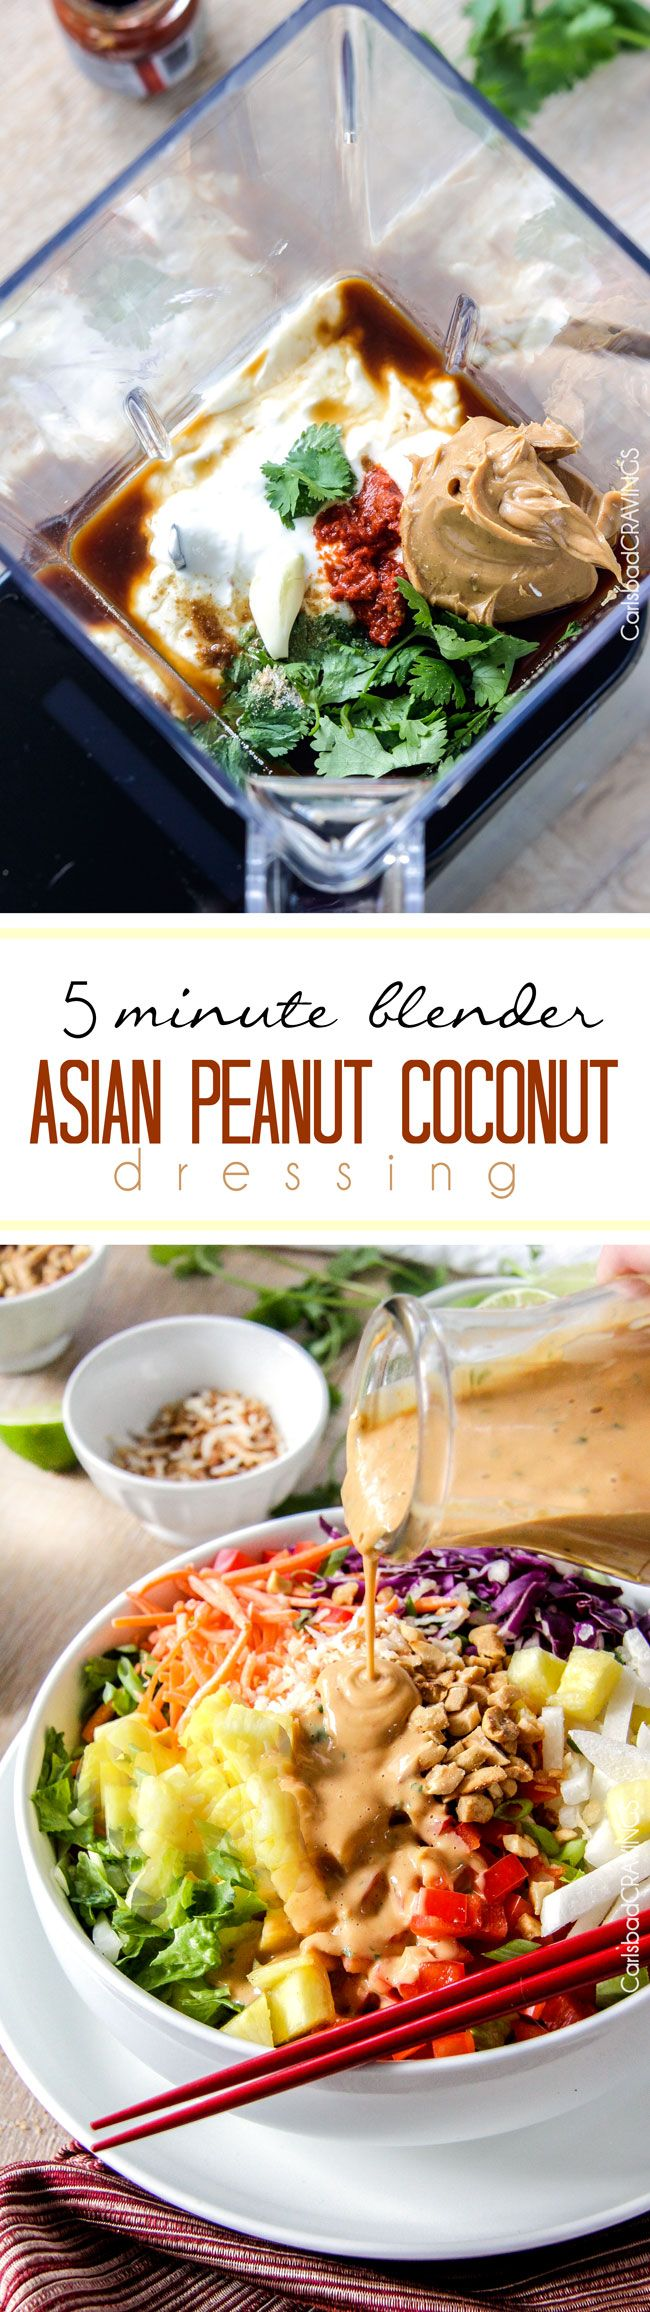 5 Minute Blender Asian Peanut Coconut Dressing is so ridiculously delicious you will want to put it on everything! #dressing #salad #peanut #Asian via @carlsbadcraving